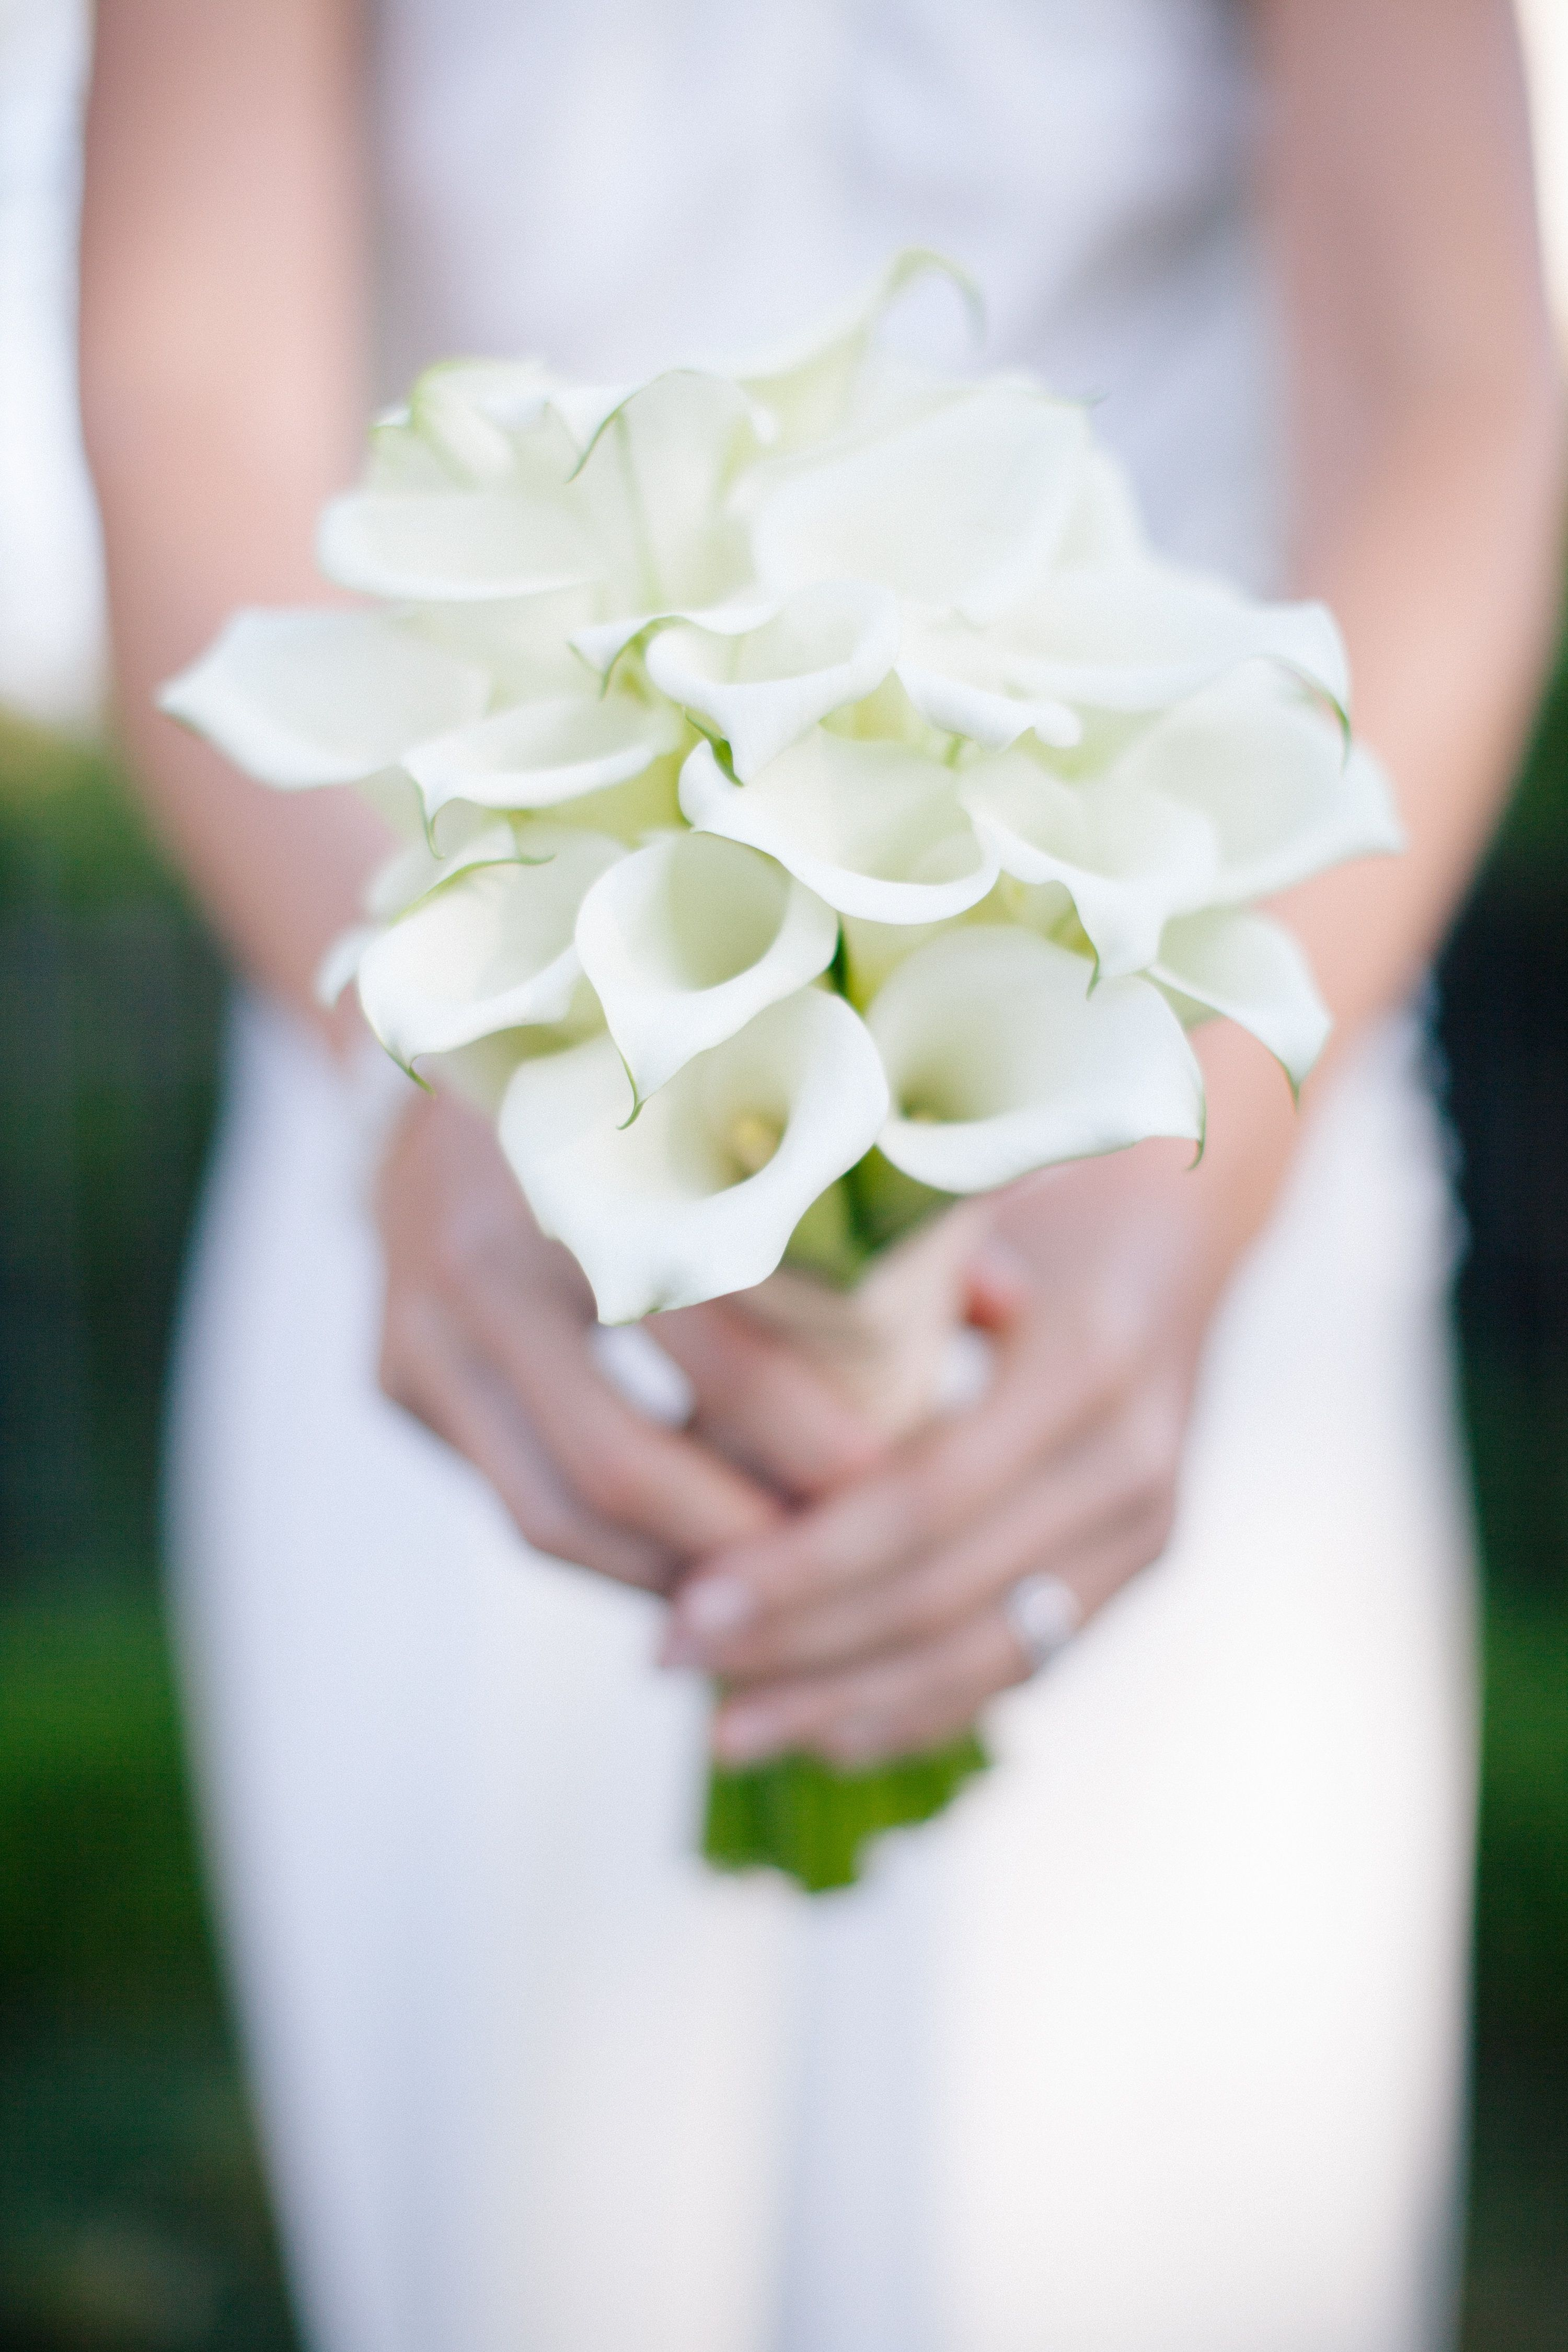 Fleurs Pour Bouquets Wedding Bouquets And Flowers Inspiration Photo Maleya